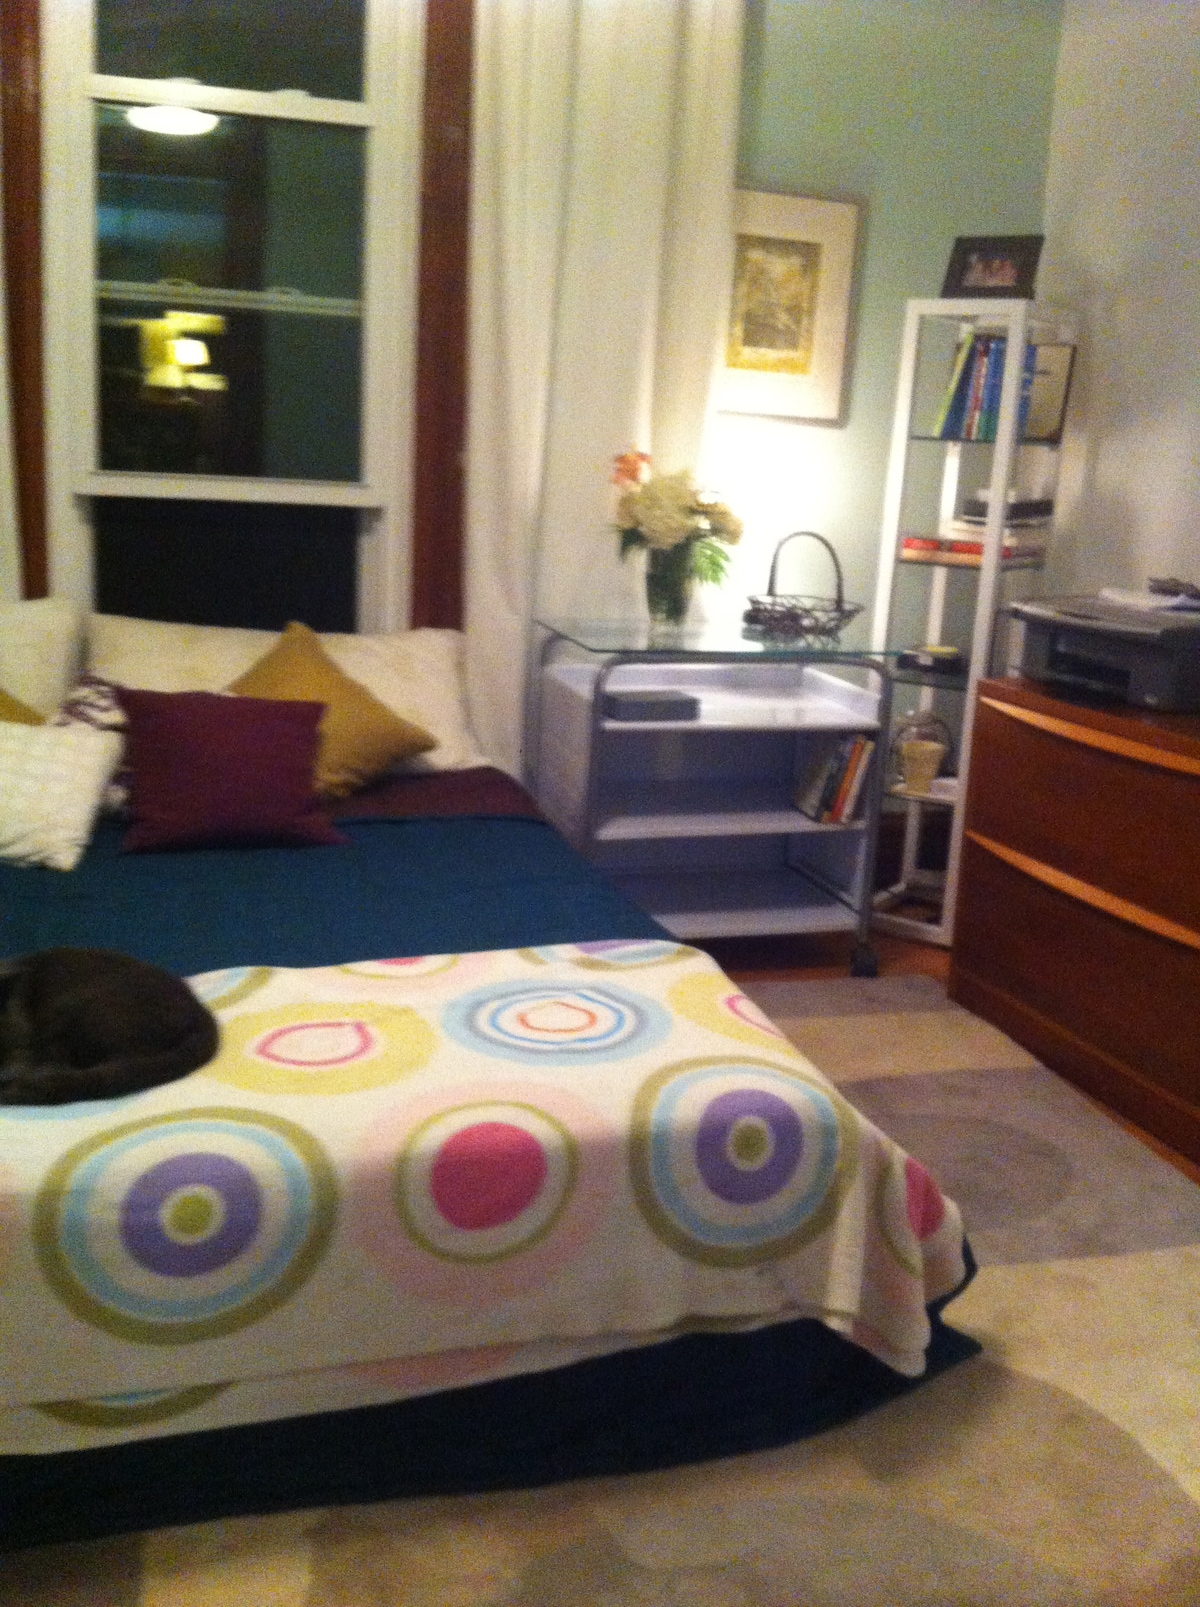 Another angle of the downstairs bedroom-- it's comfy and cozy!